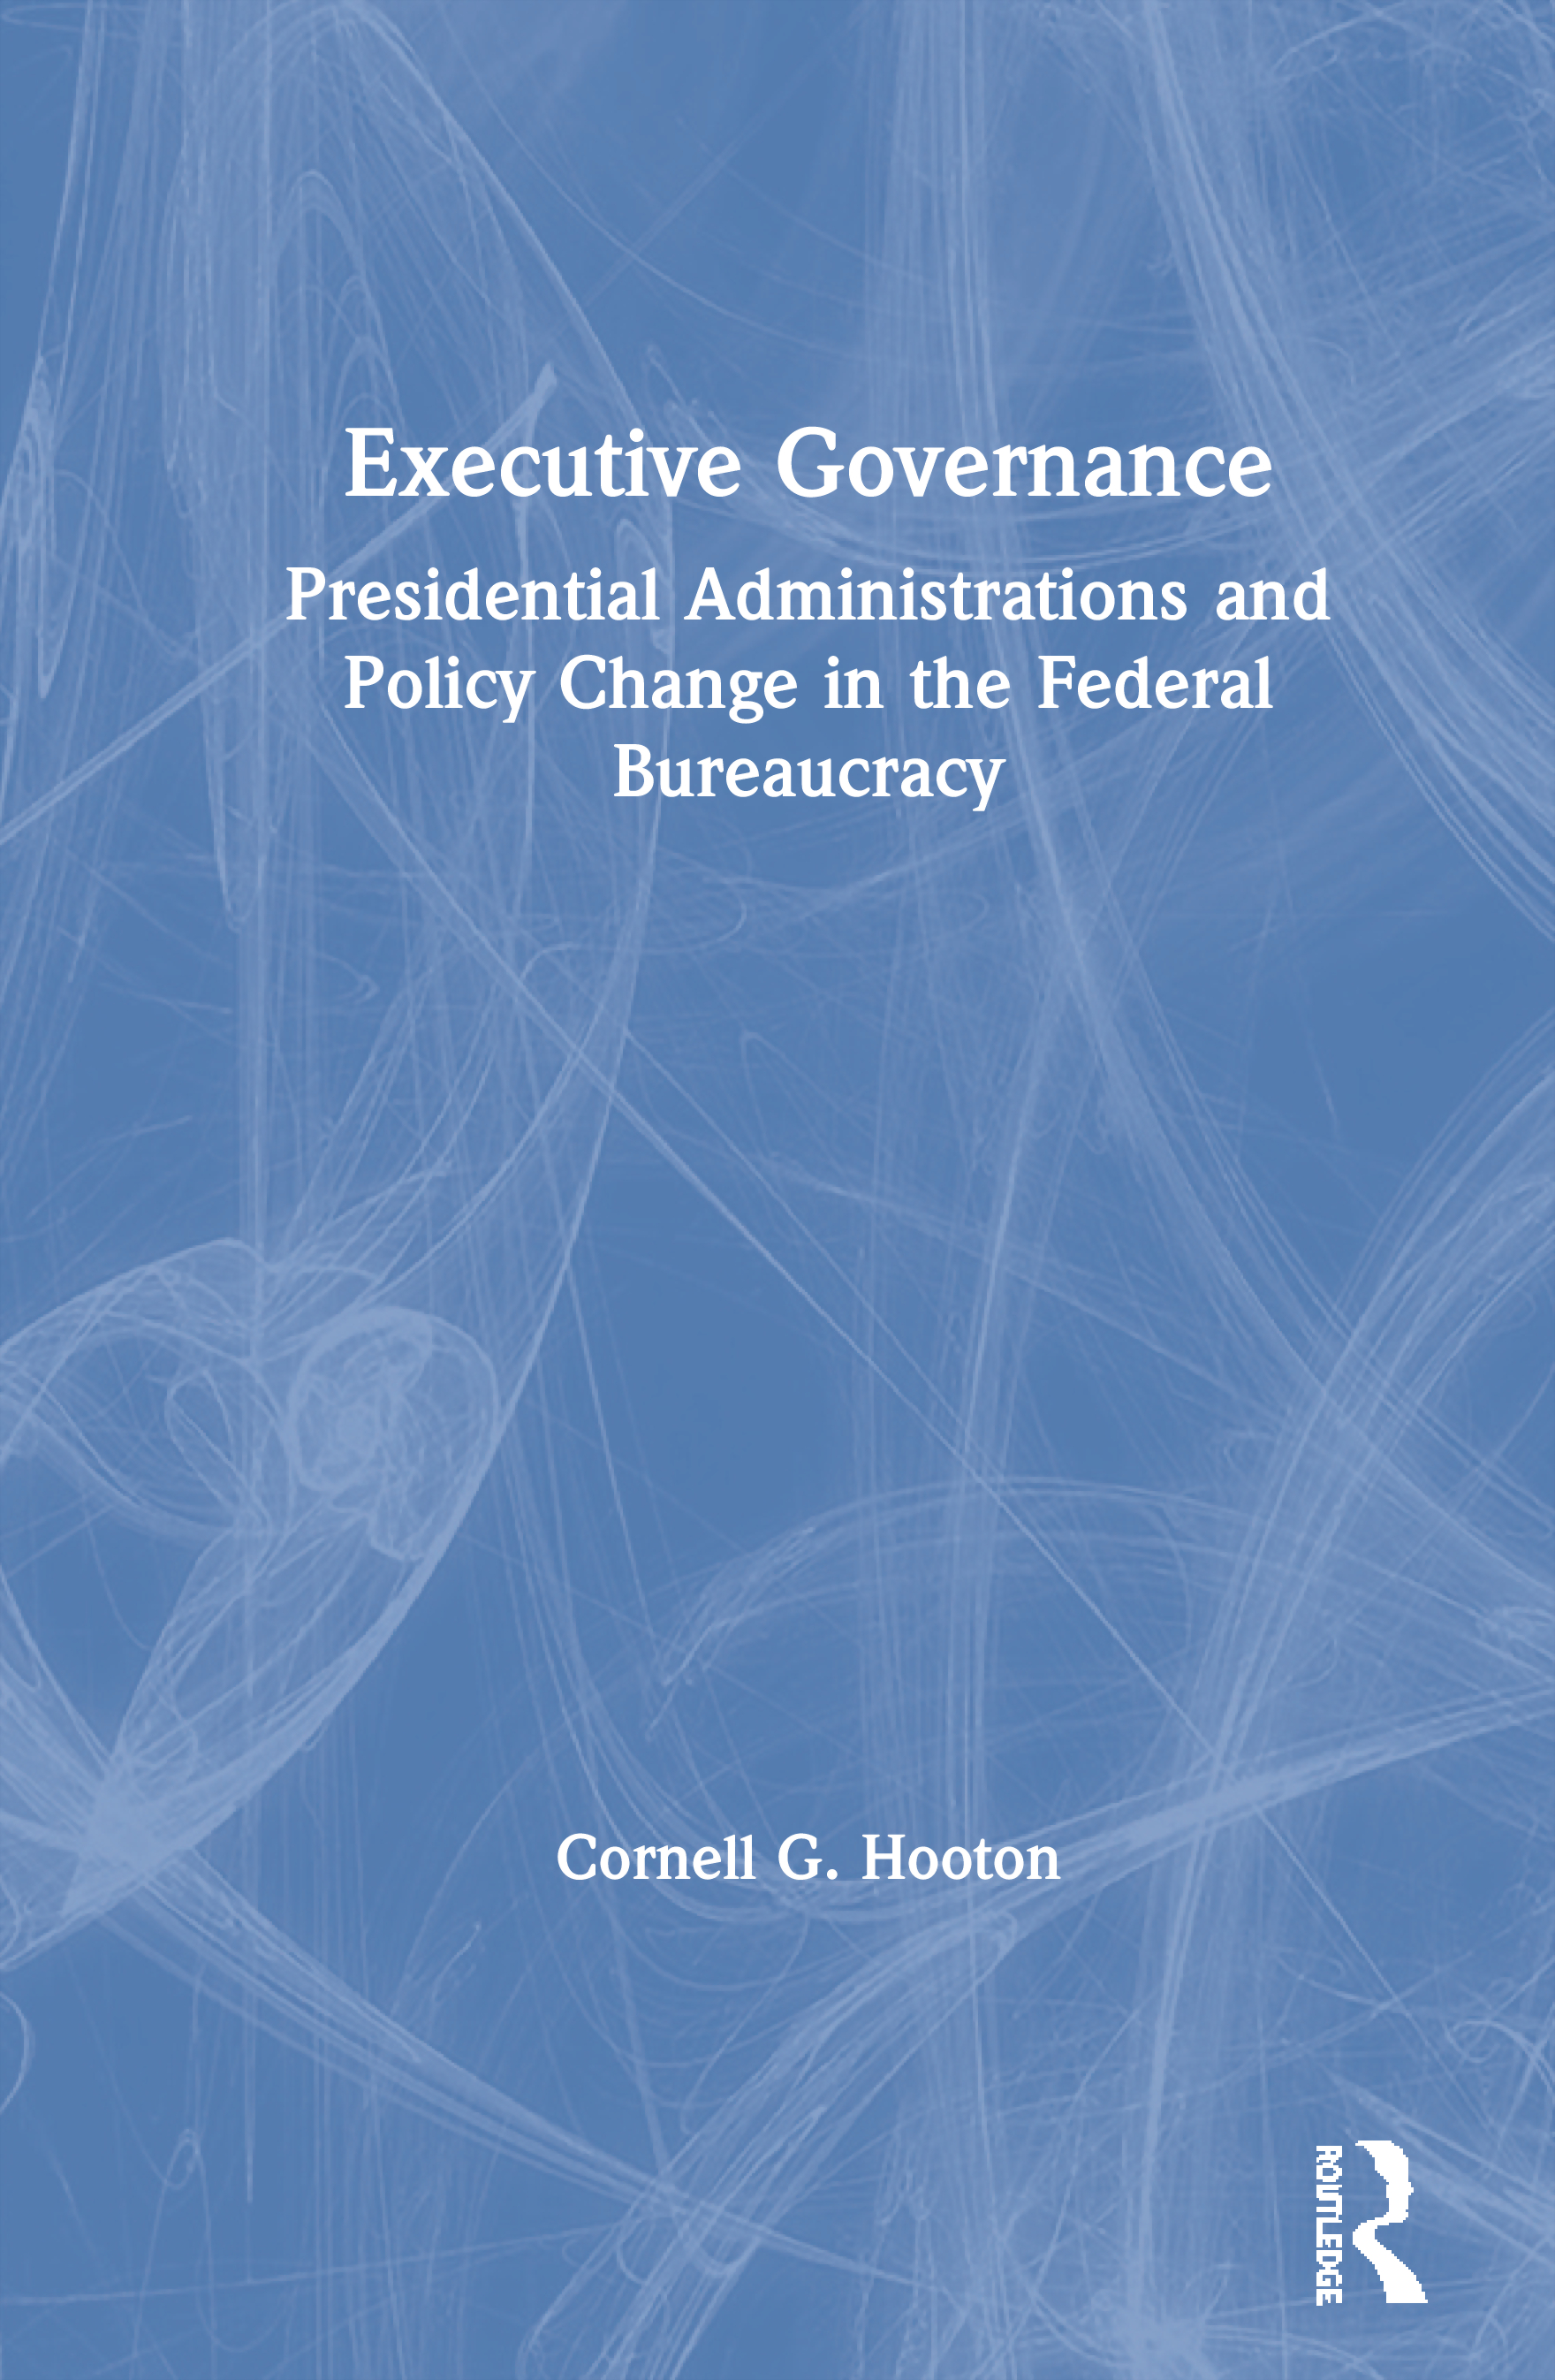 Executive Governance: Presidential Administrations and Policy Change in the Federal Bureaucracy: Presidential Administrations and Policy Change in the Federal Bureaucracy, 1st Edition (Hardback) book cover